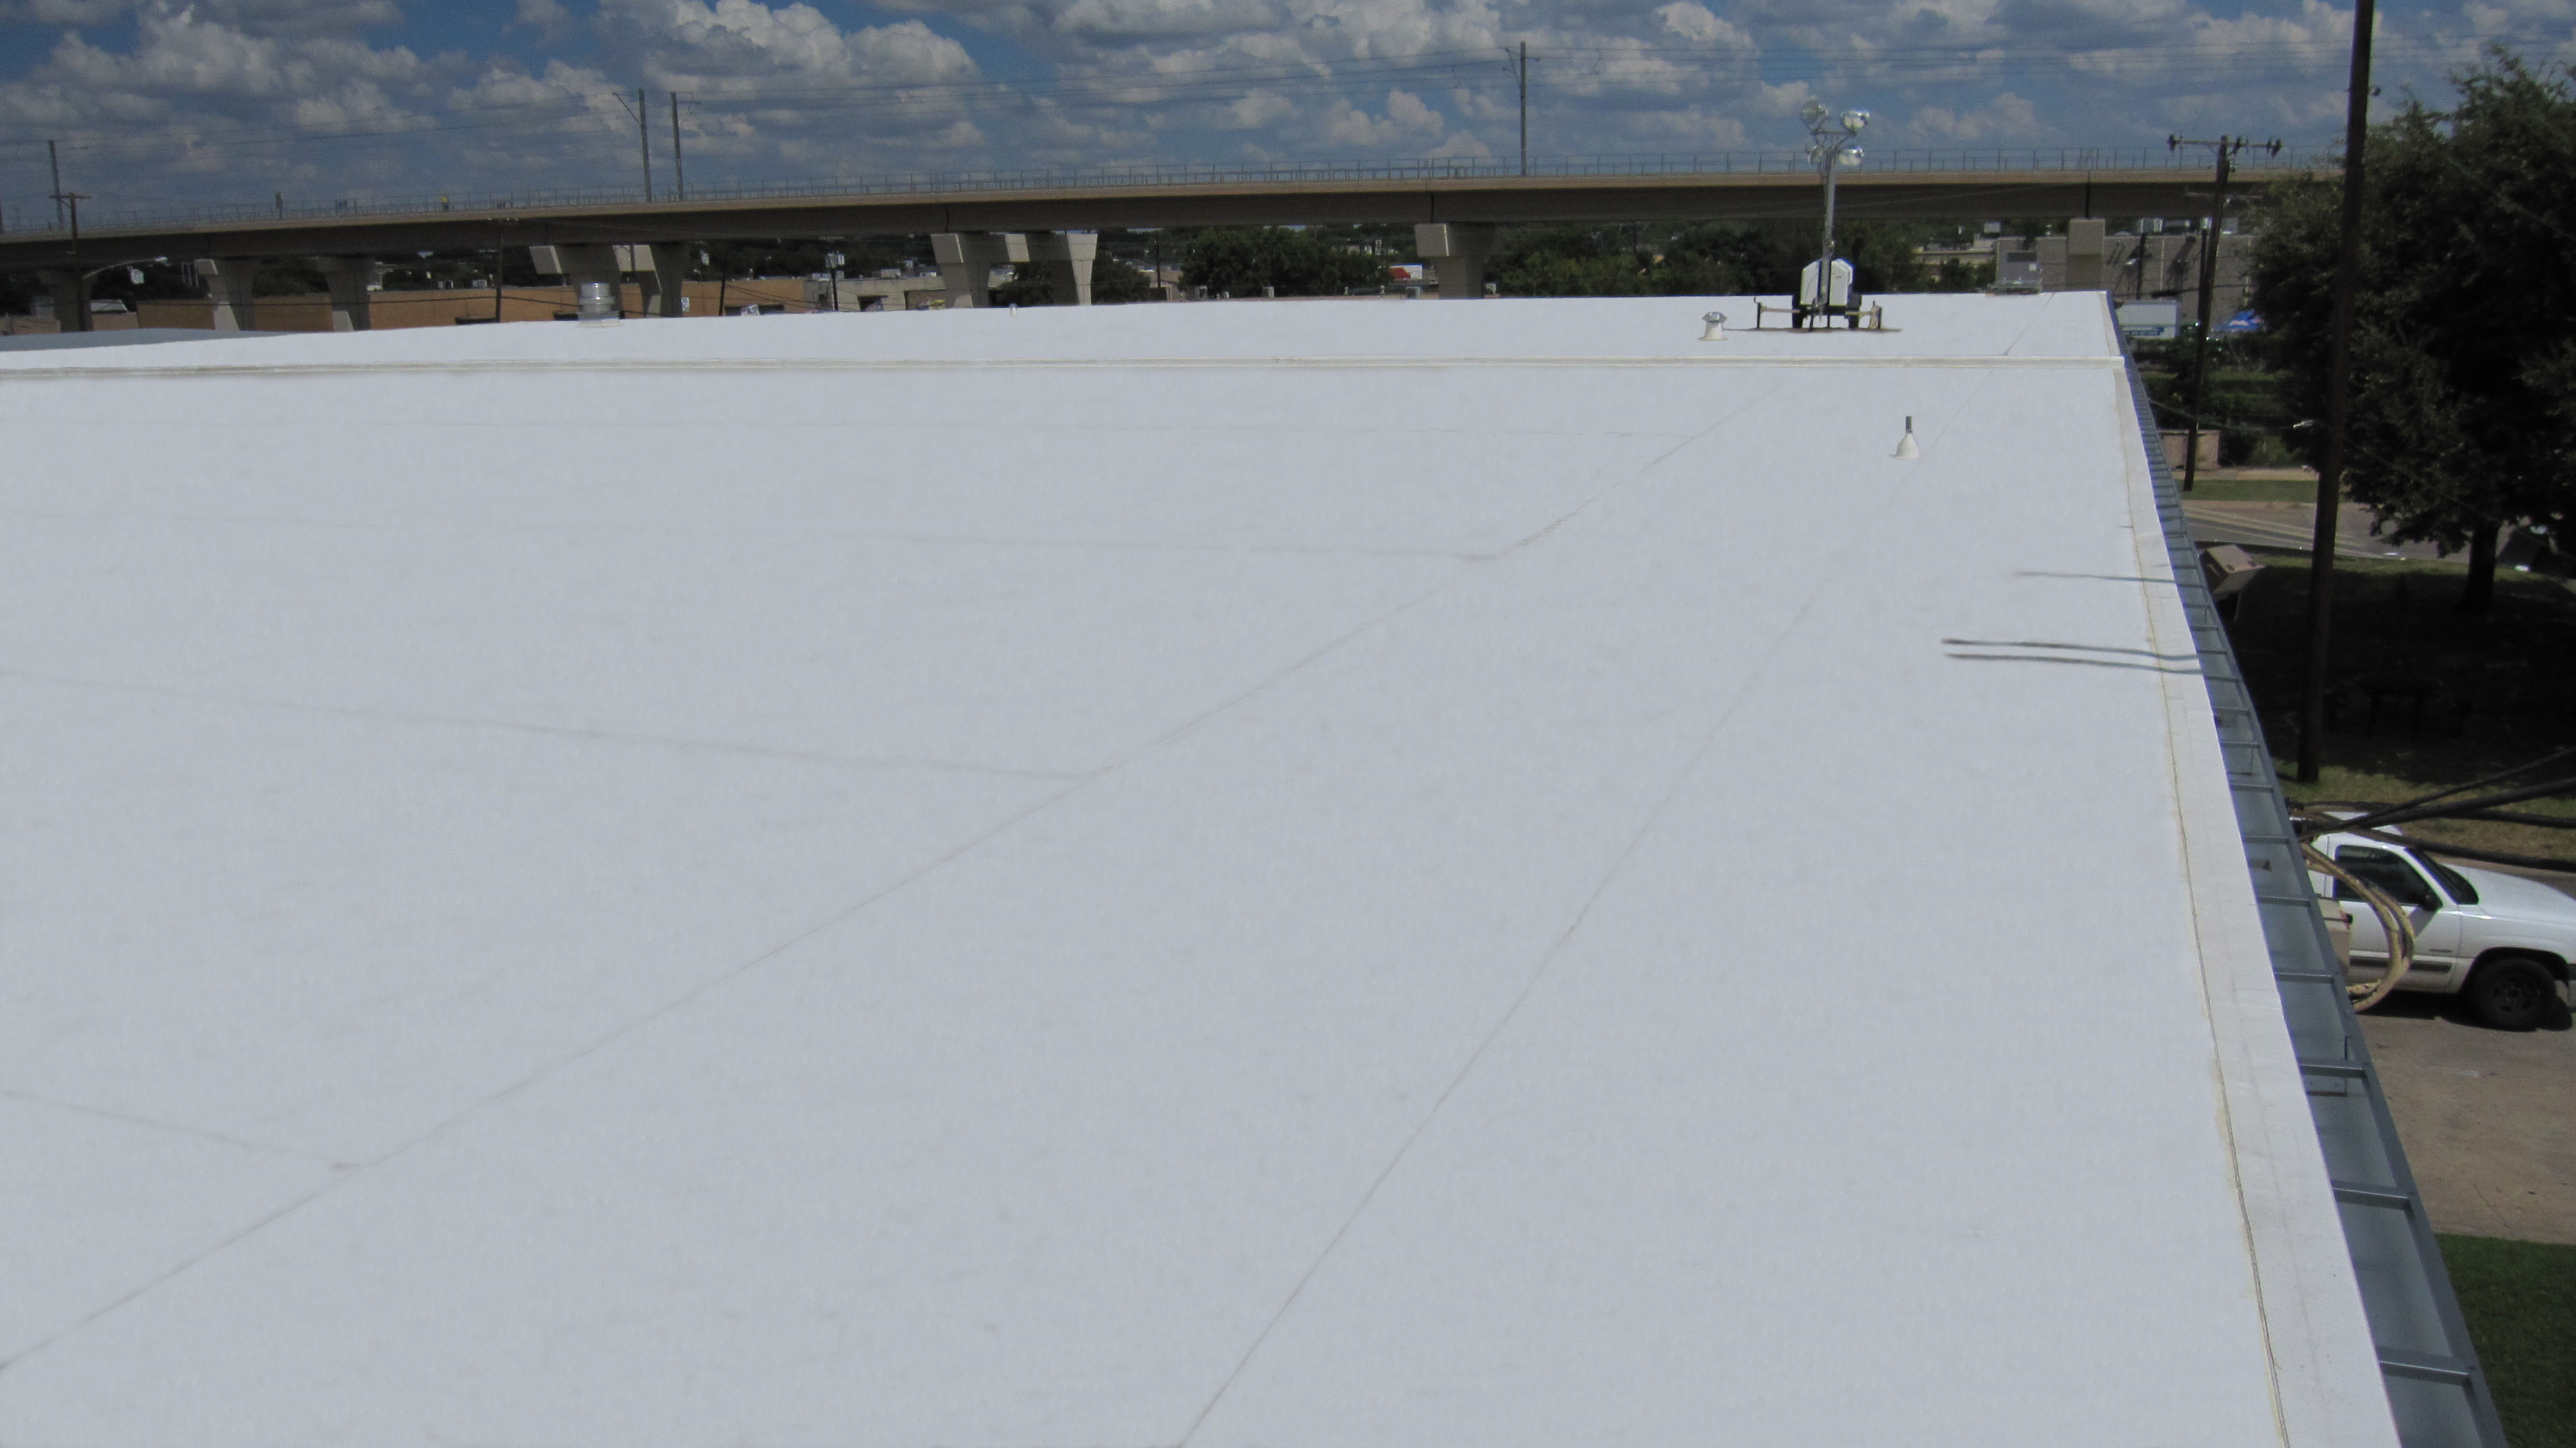 Meletio's - Dallas, Texas - After GenFlex TPO Roofing System